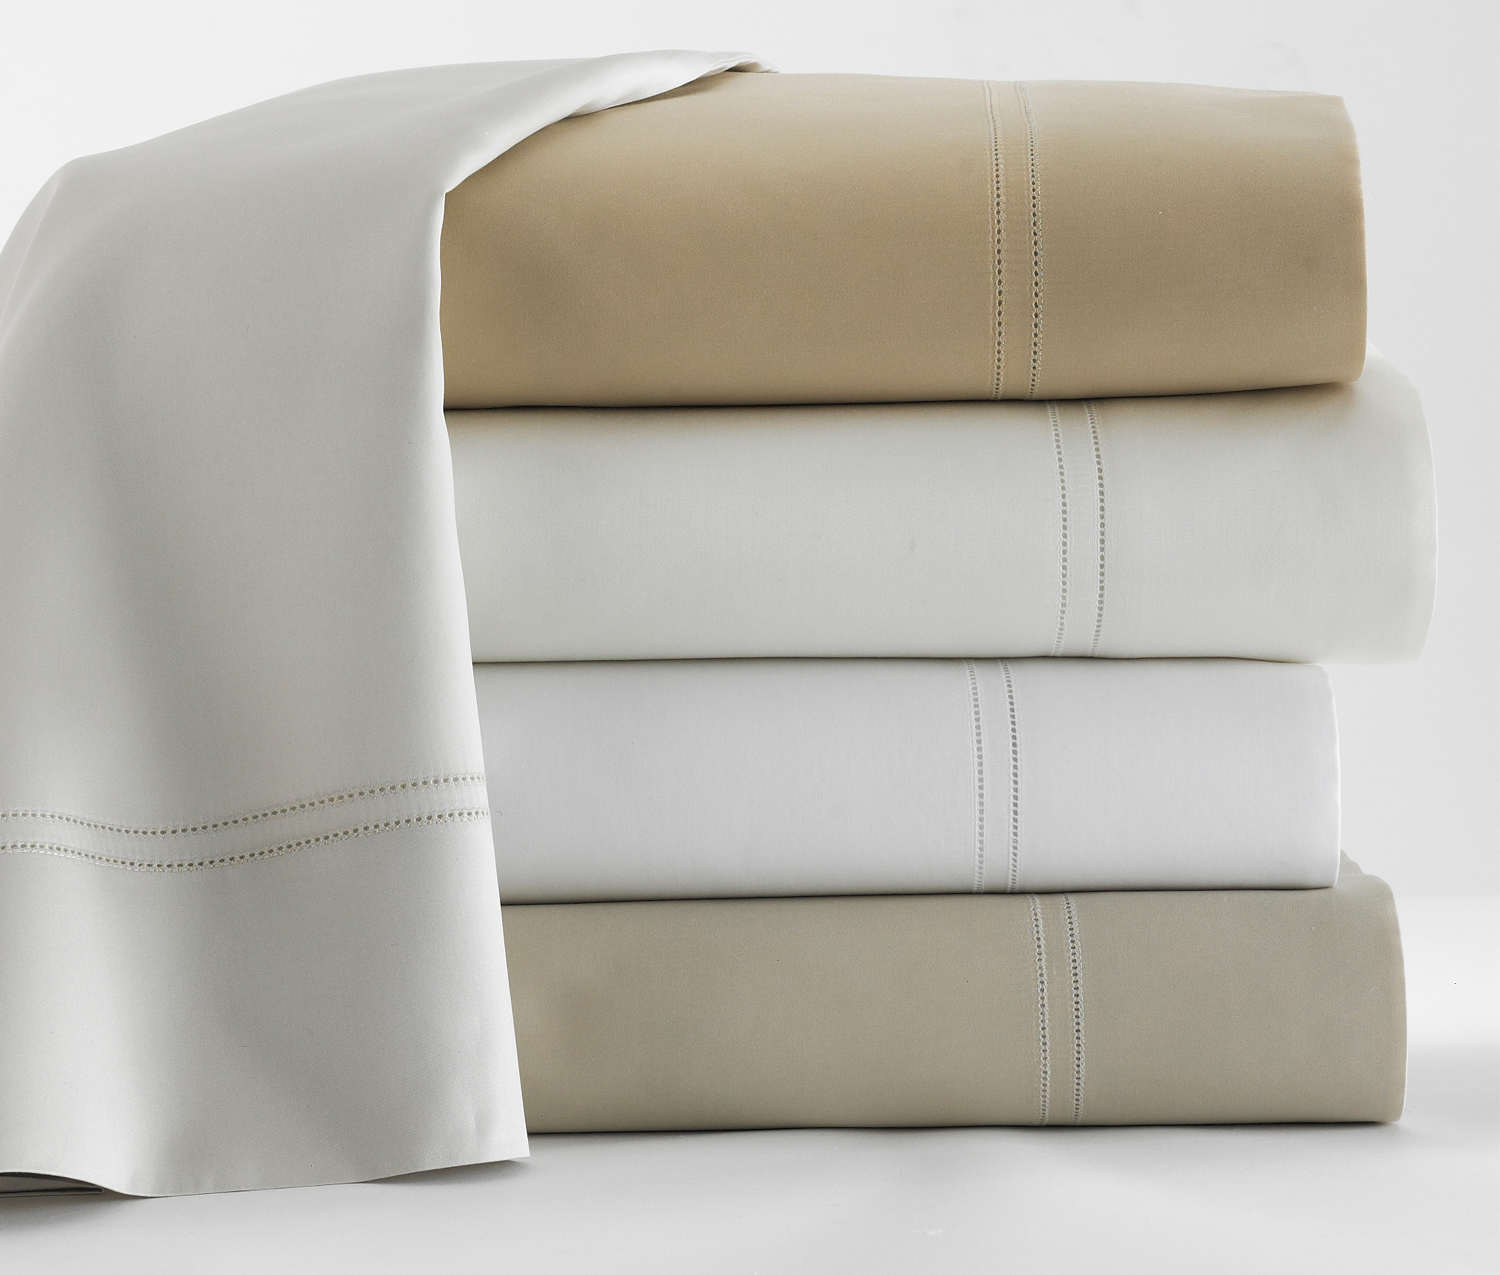 100 Egyptian Cotton Sheets Peacock Alley Virtuoso Duvet Cover Knife Edge